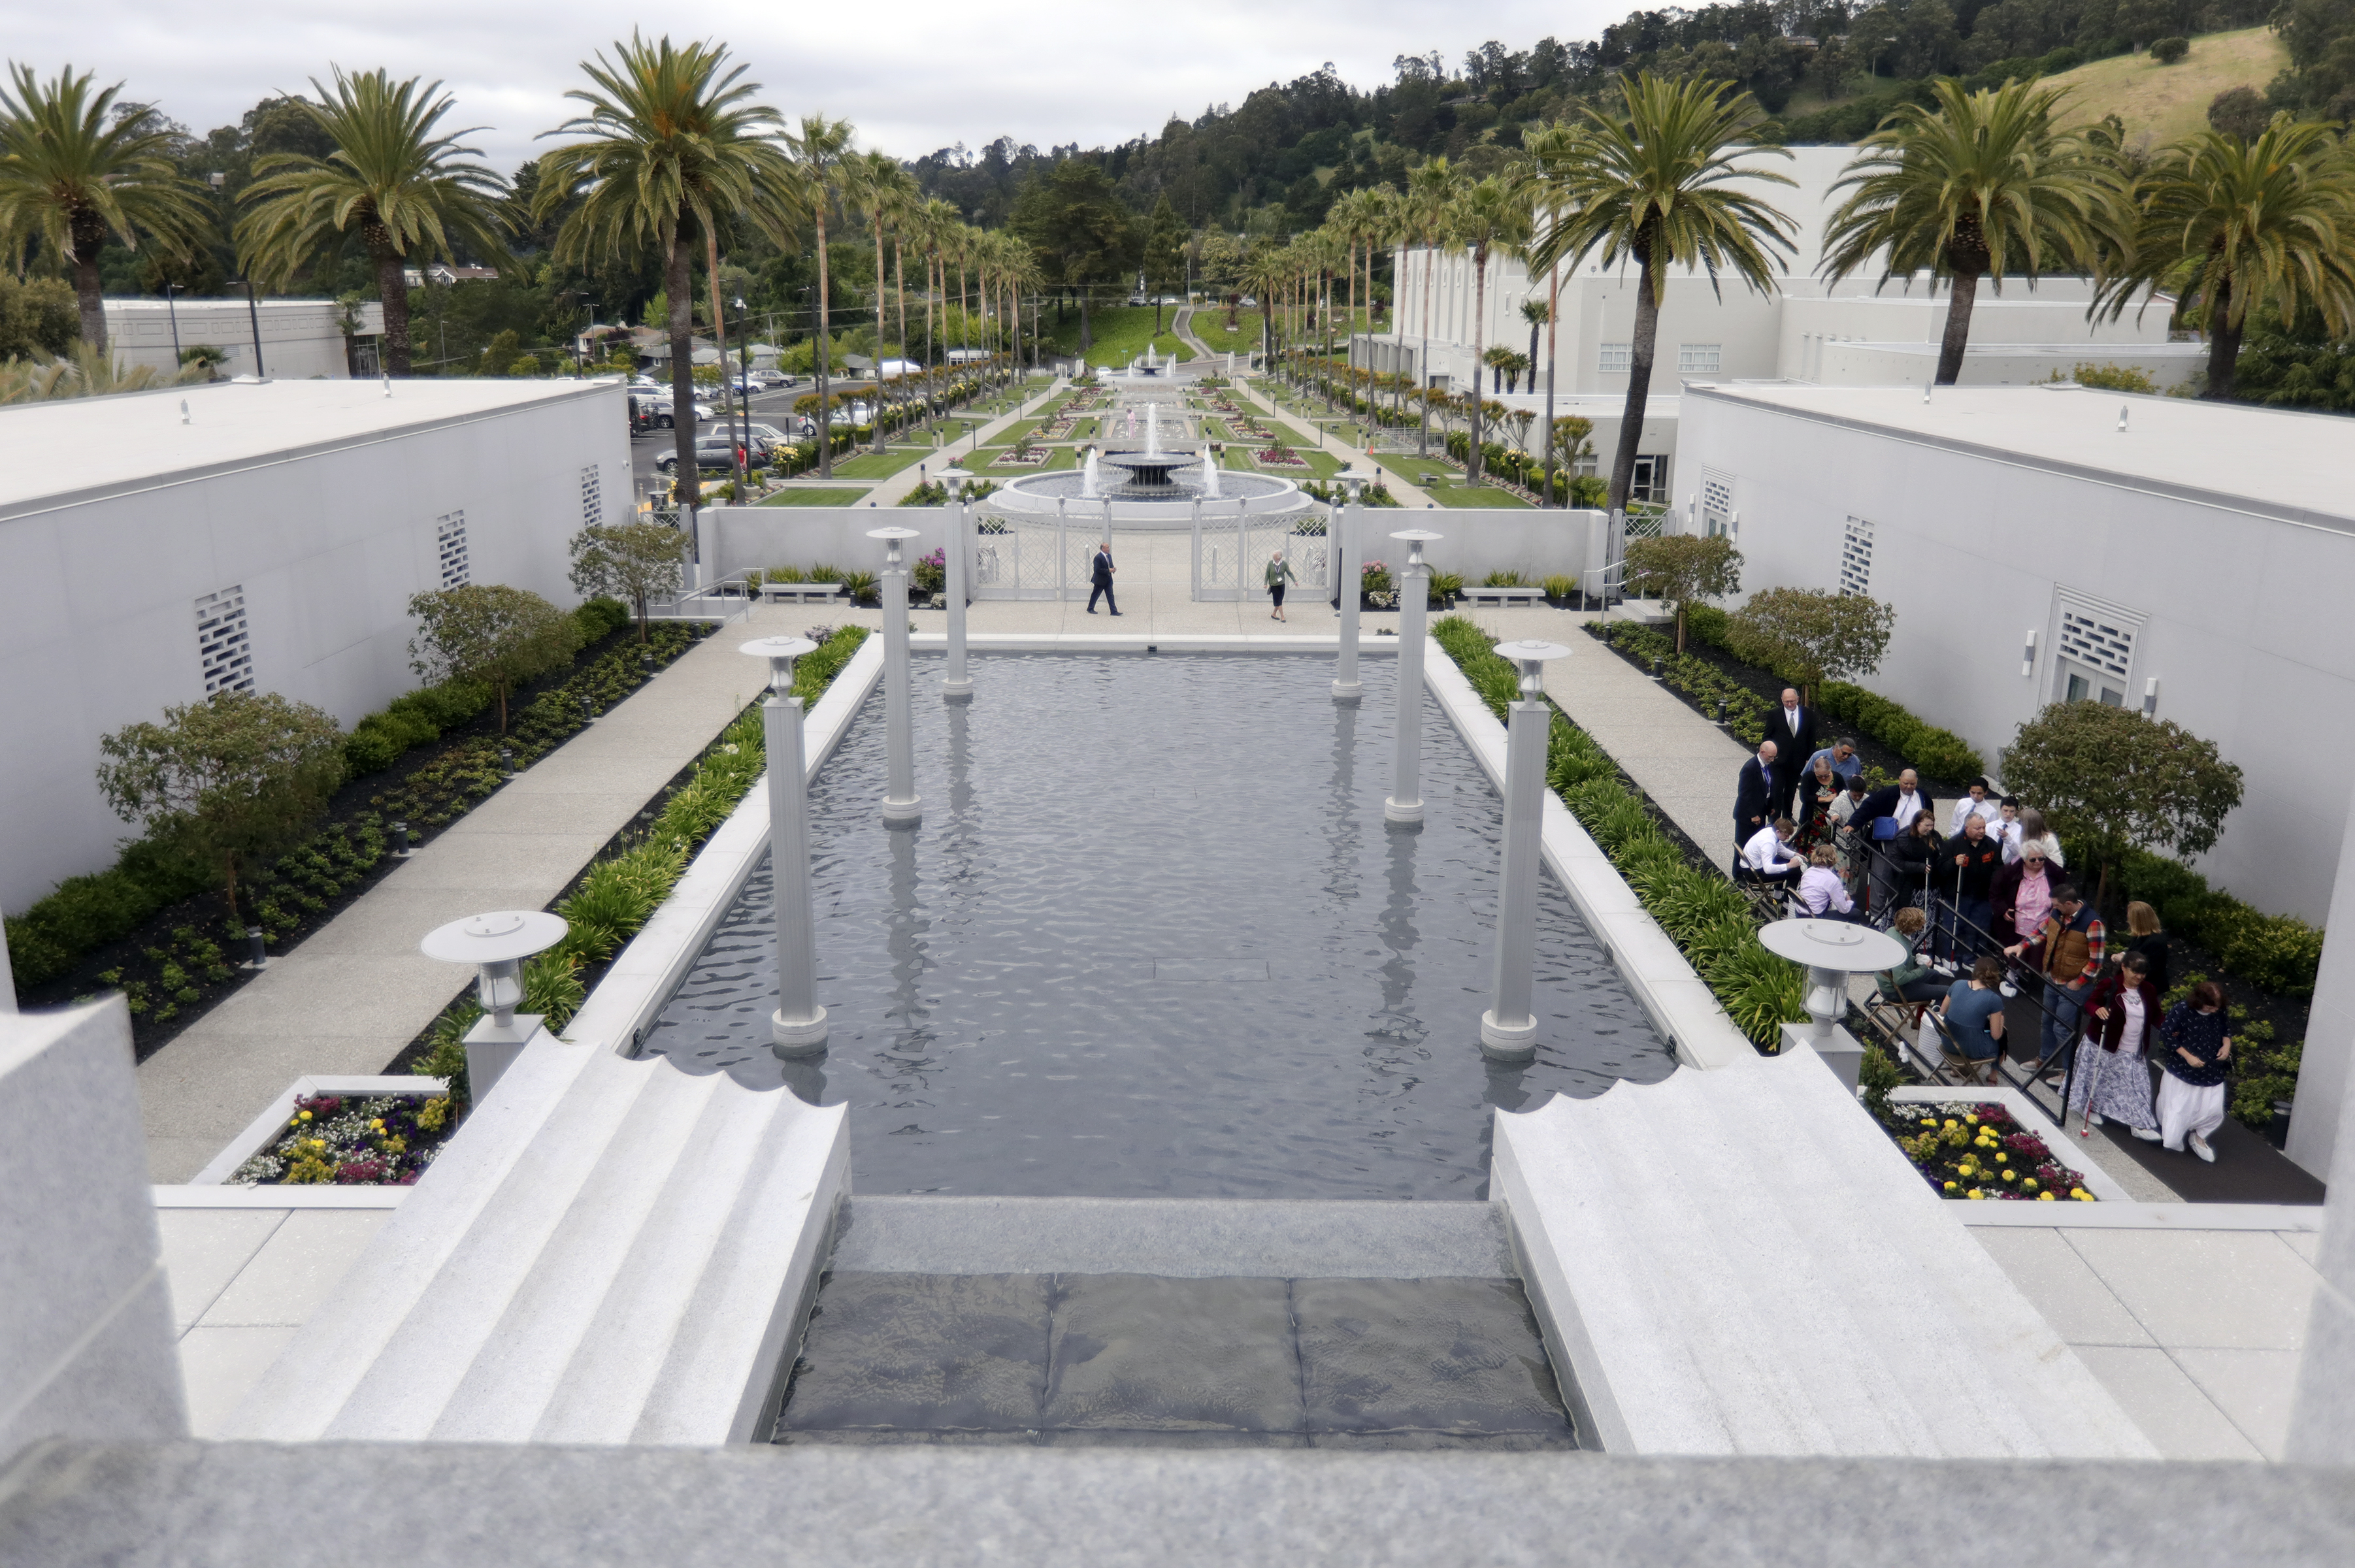 People approach the entrance to tour the newly renovated Oakland California Temple of The Church of Jesus Christ of Latter-day Saints in Oakland, Cali., on Monday, May 6, 2019.